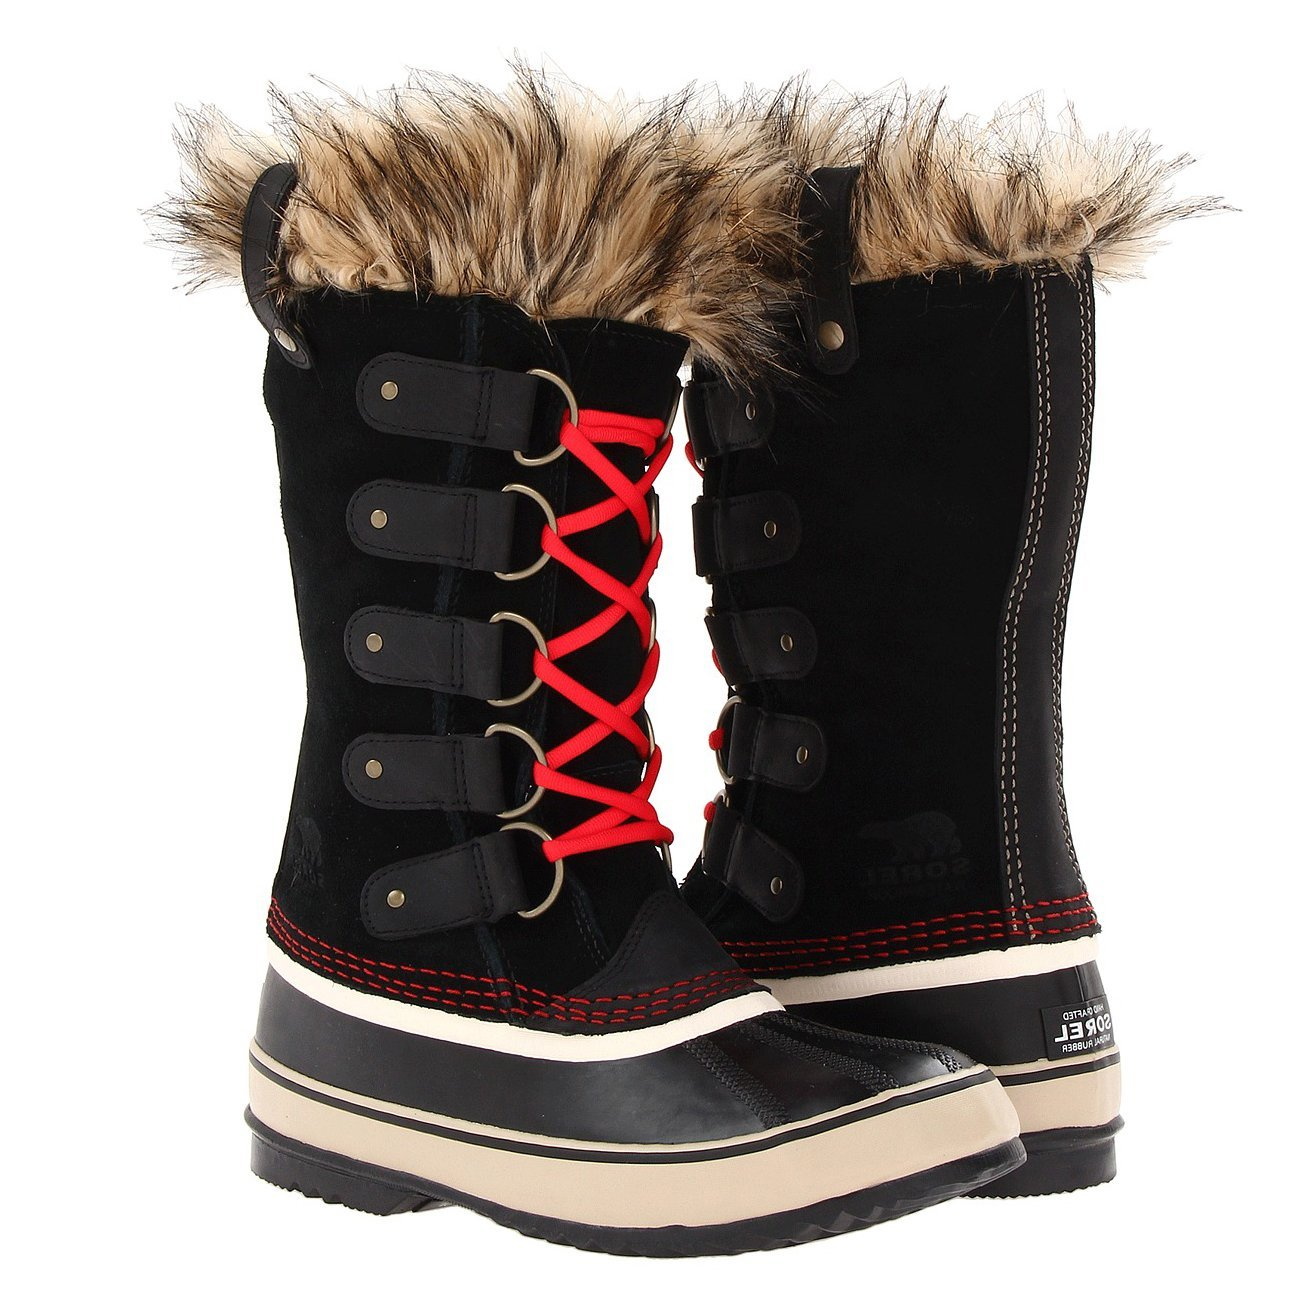 sorel joan of arctic boots sorel women;s joan of arctic snow boot reviews ehnooja